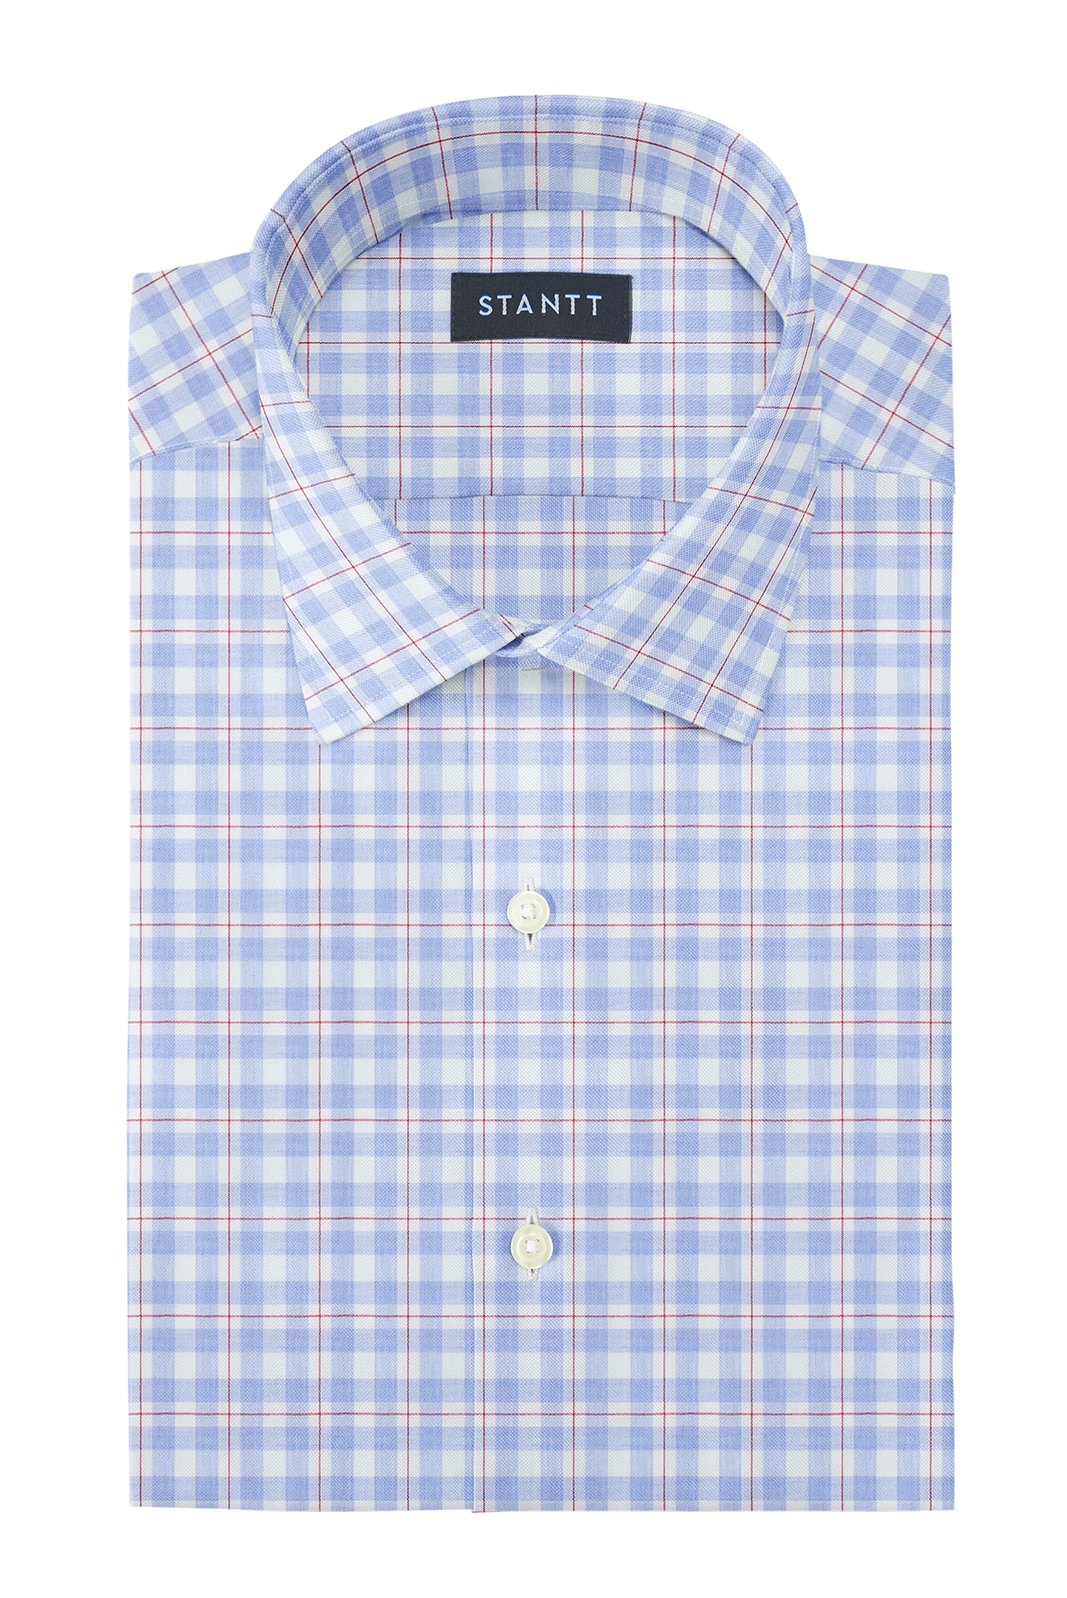 Light Blue and Red Windowpane: Modified-Spread Collar, French Cuff